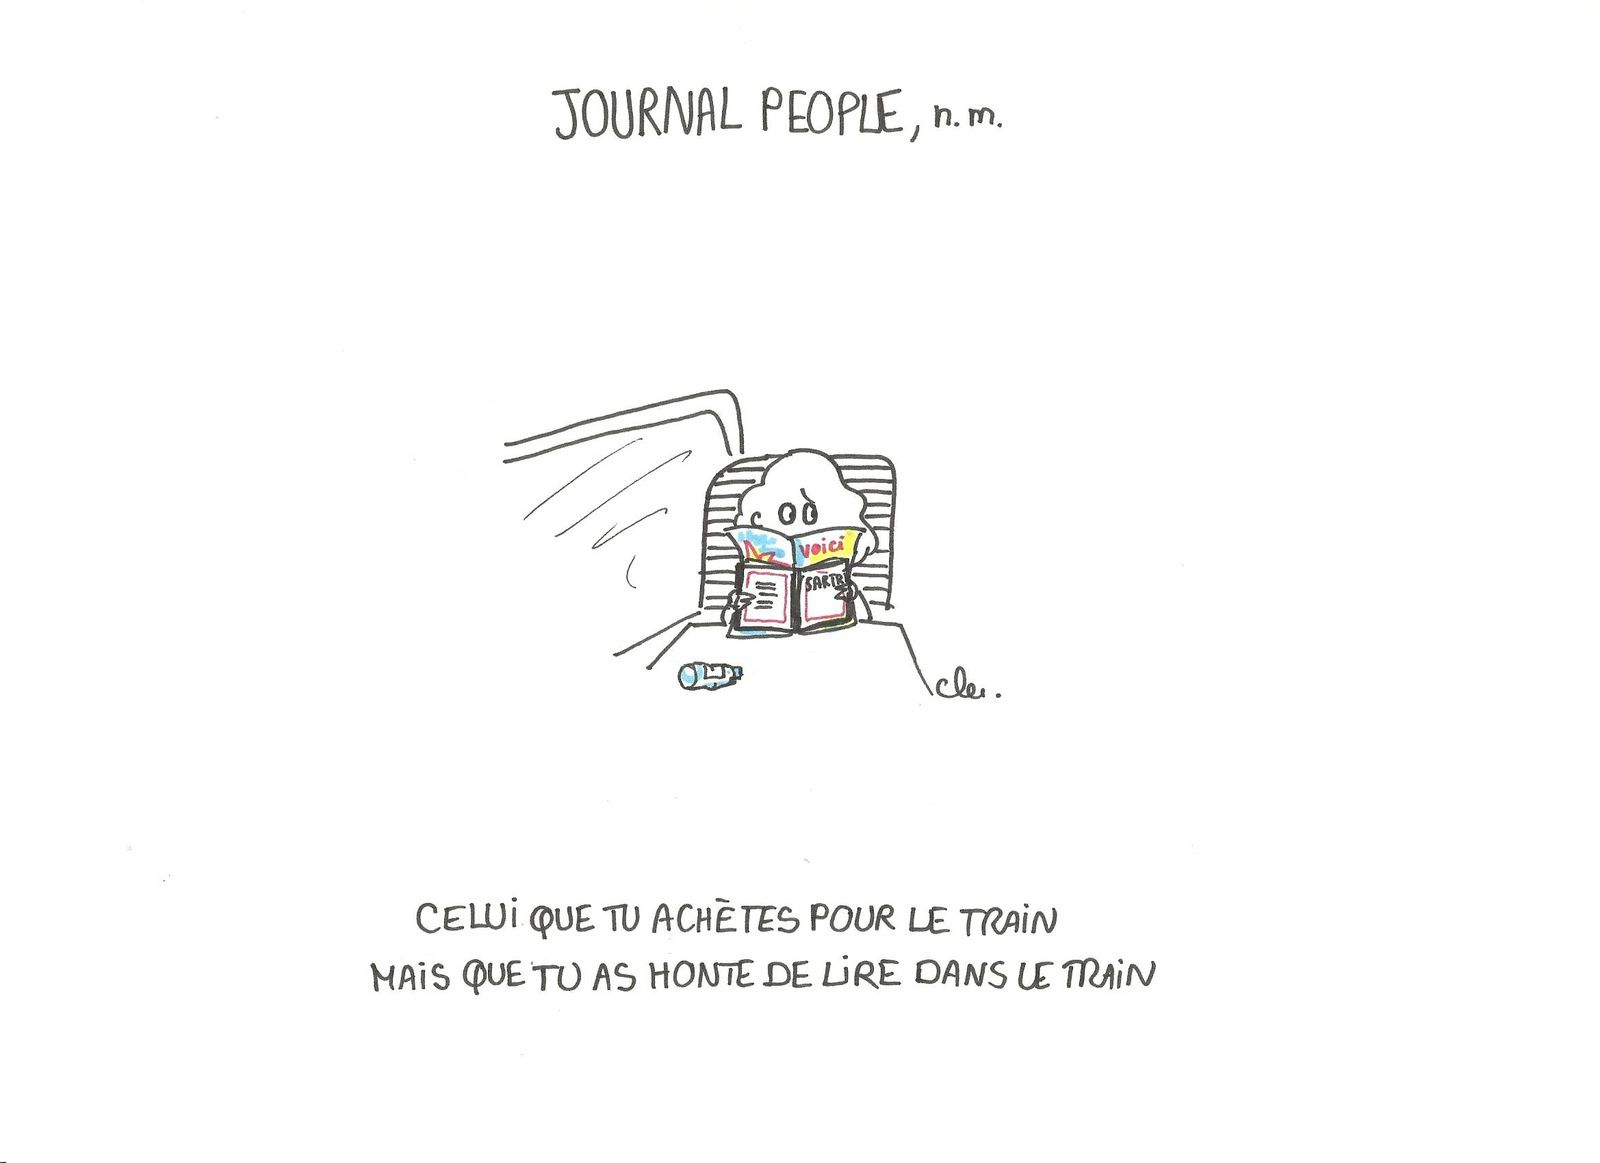 Le journal people